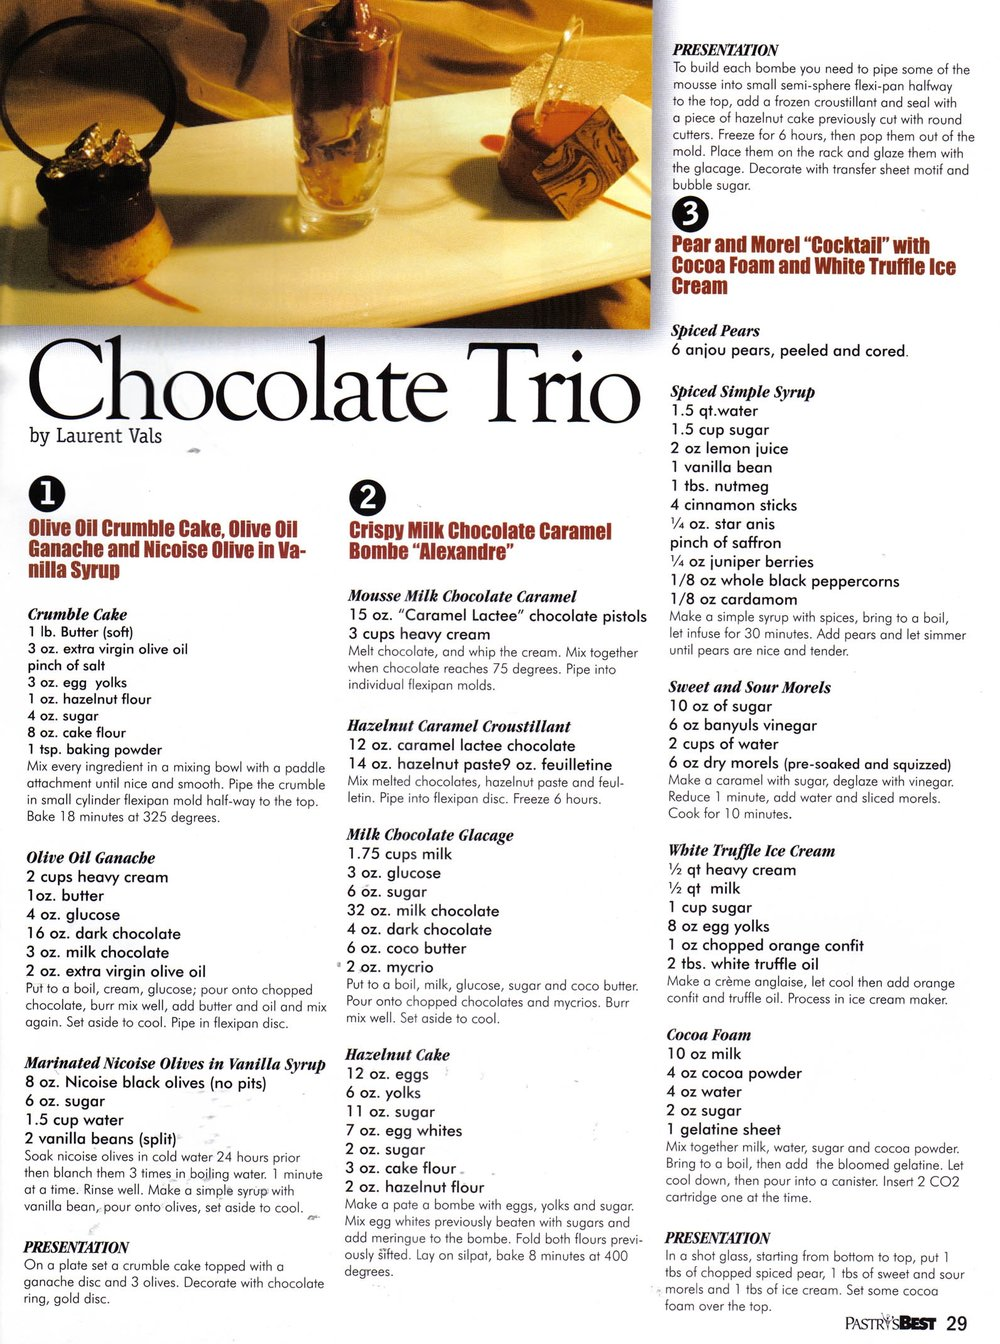 Laurent Vals' Chocolate Trio Recipe in Pastry's Best Magazine May 2006